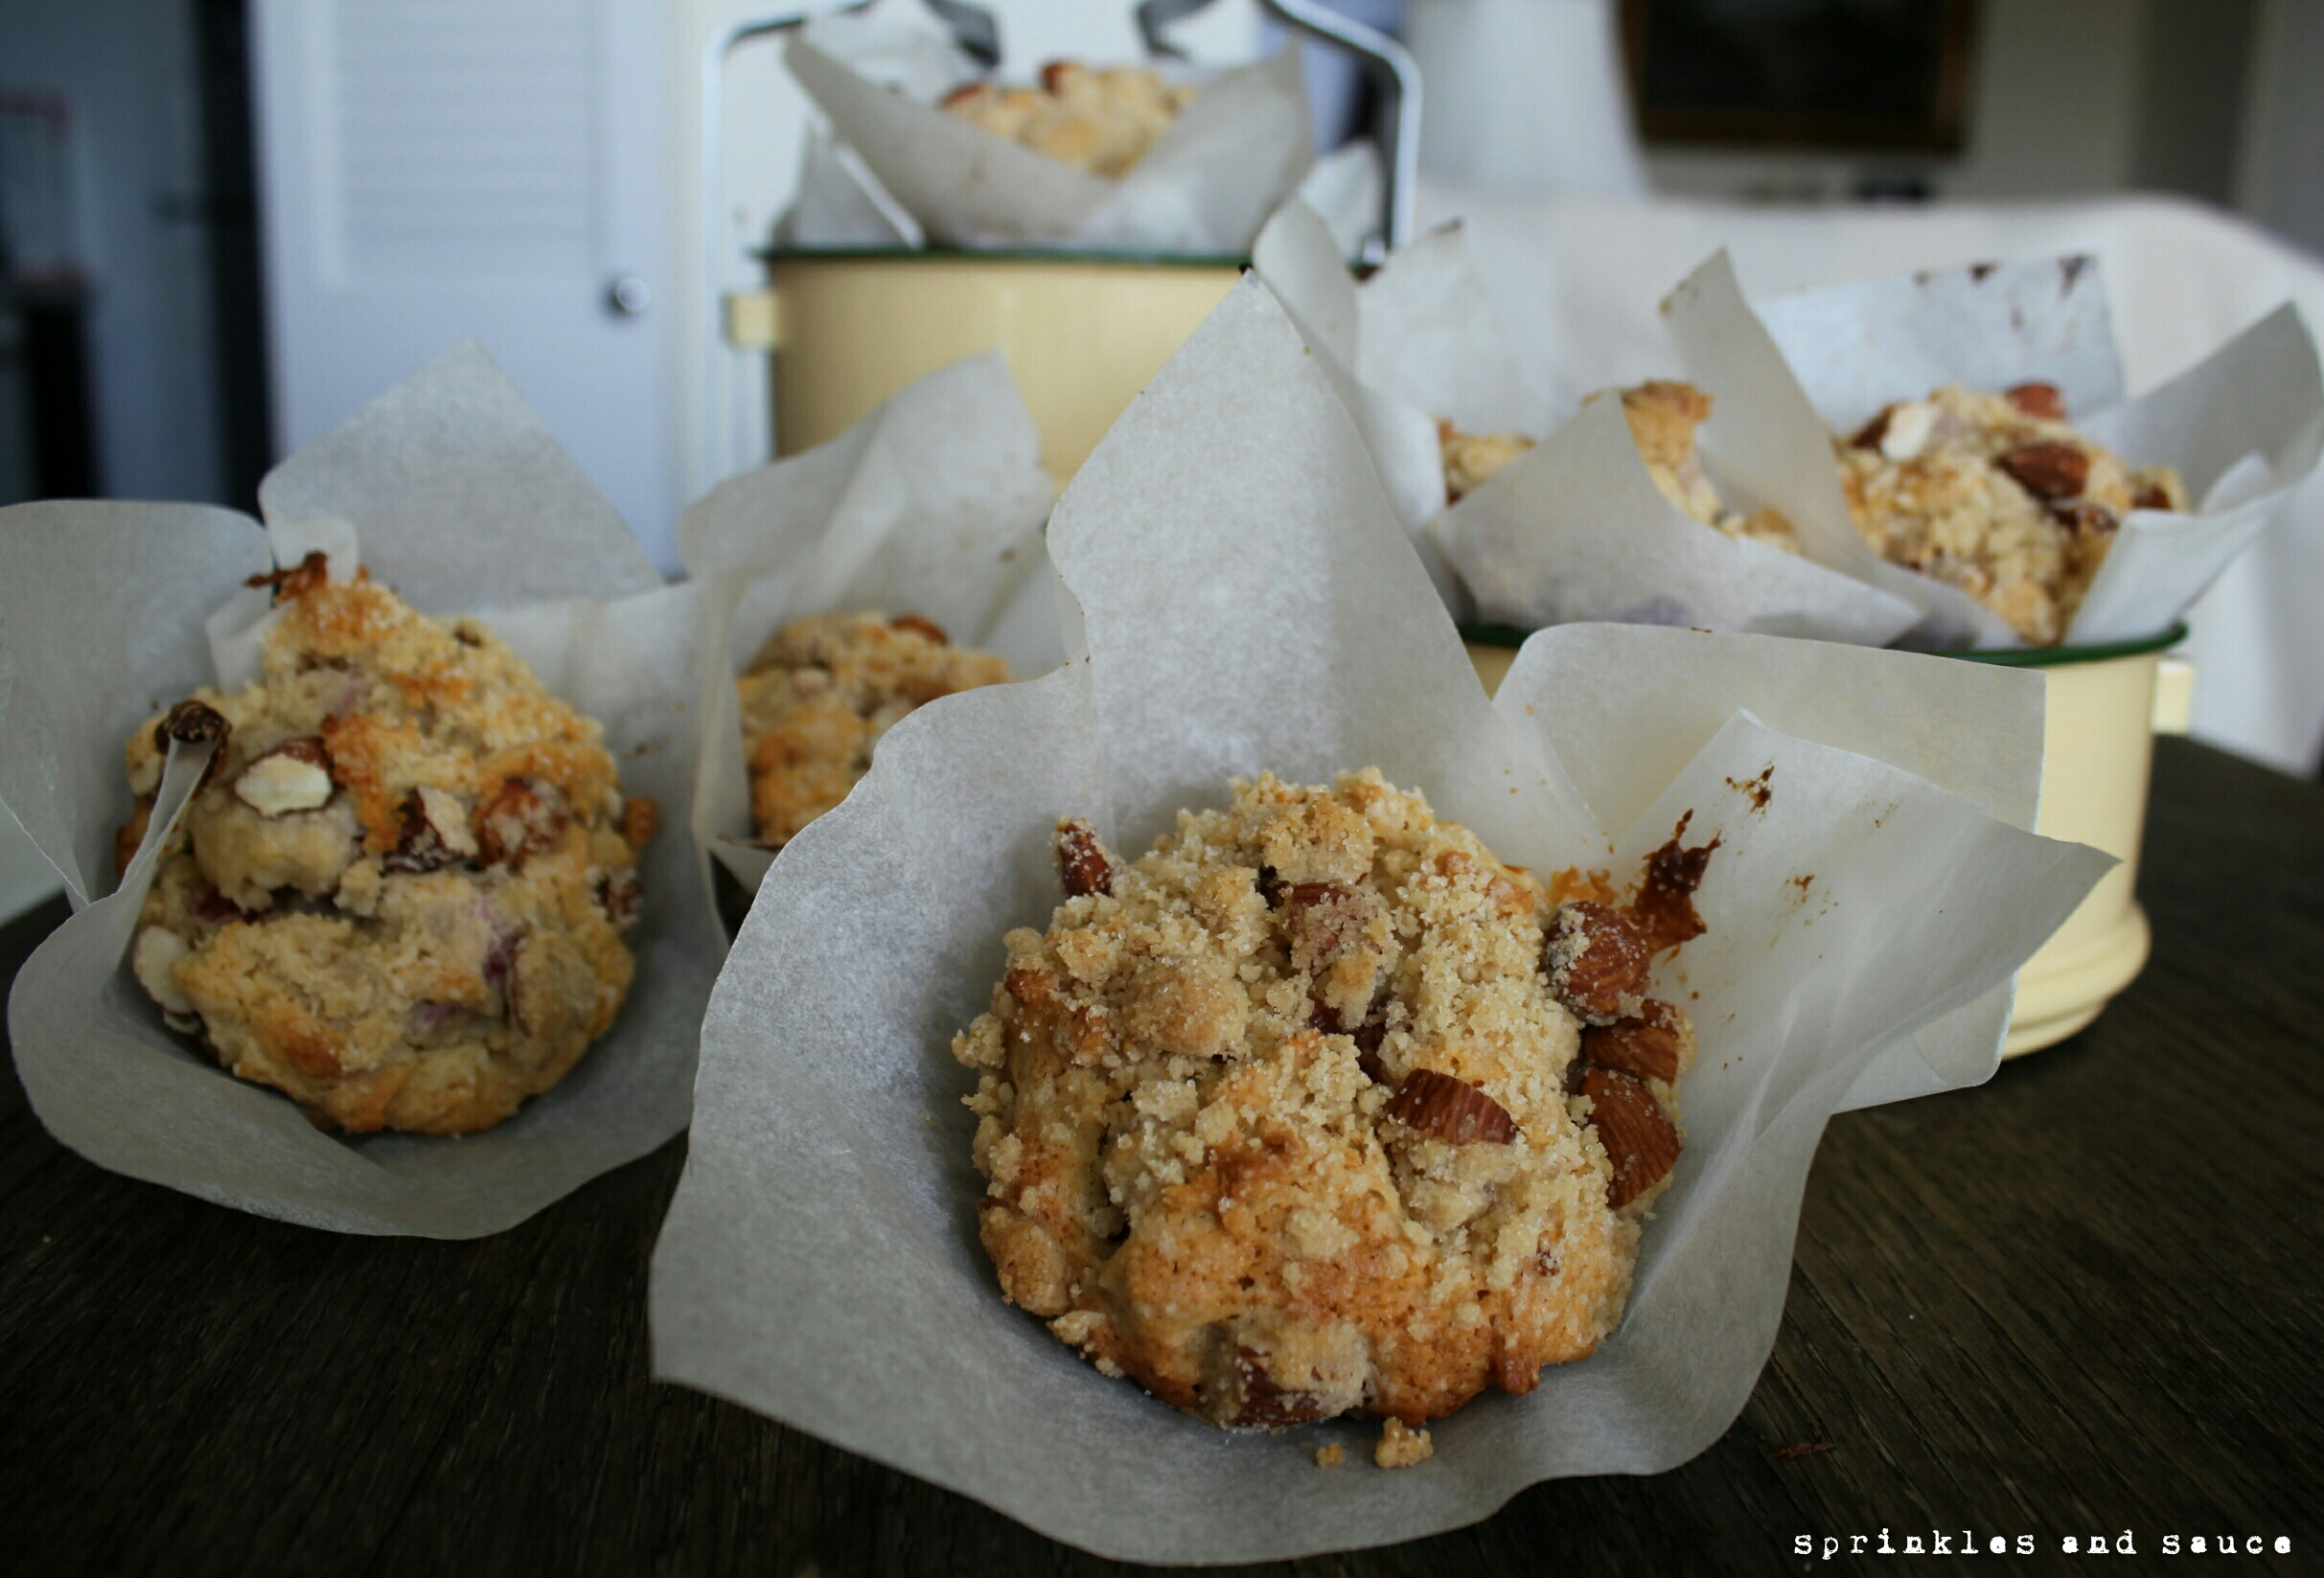 Rhubarb Muffins with Almond Streusel - sprinkles and sauce